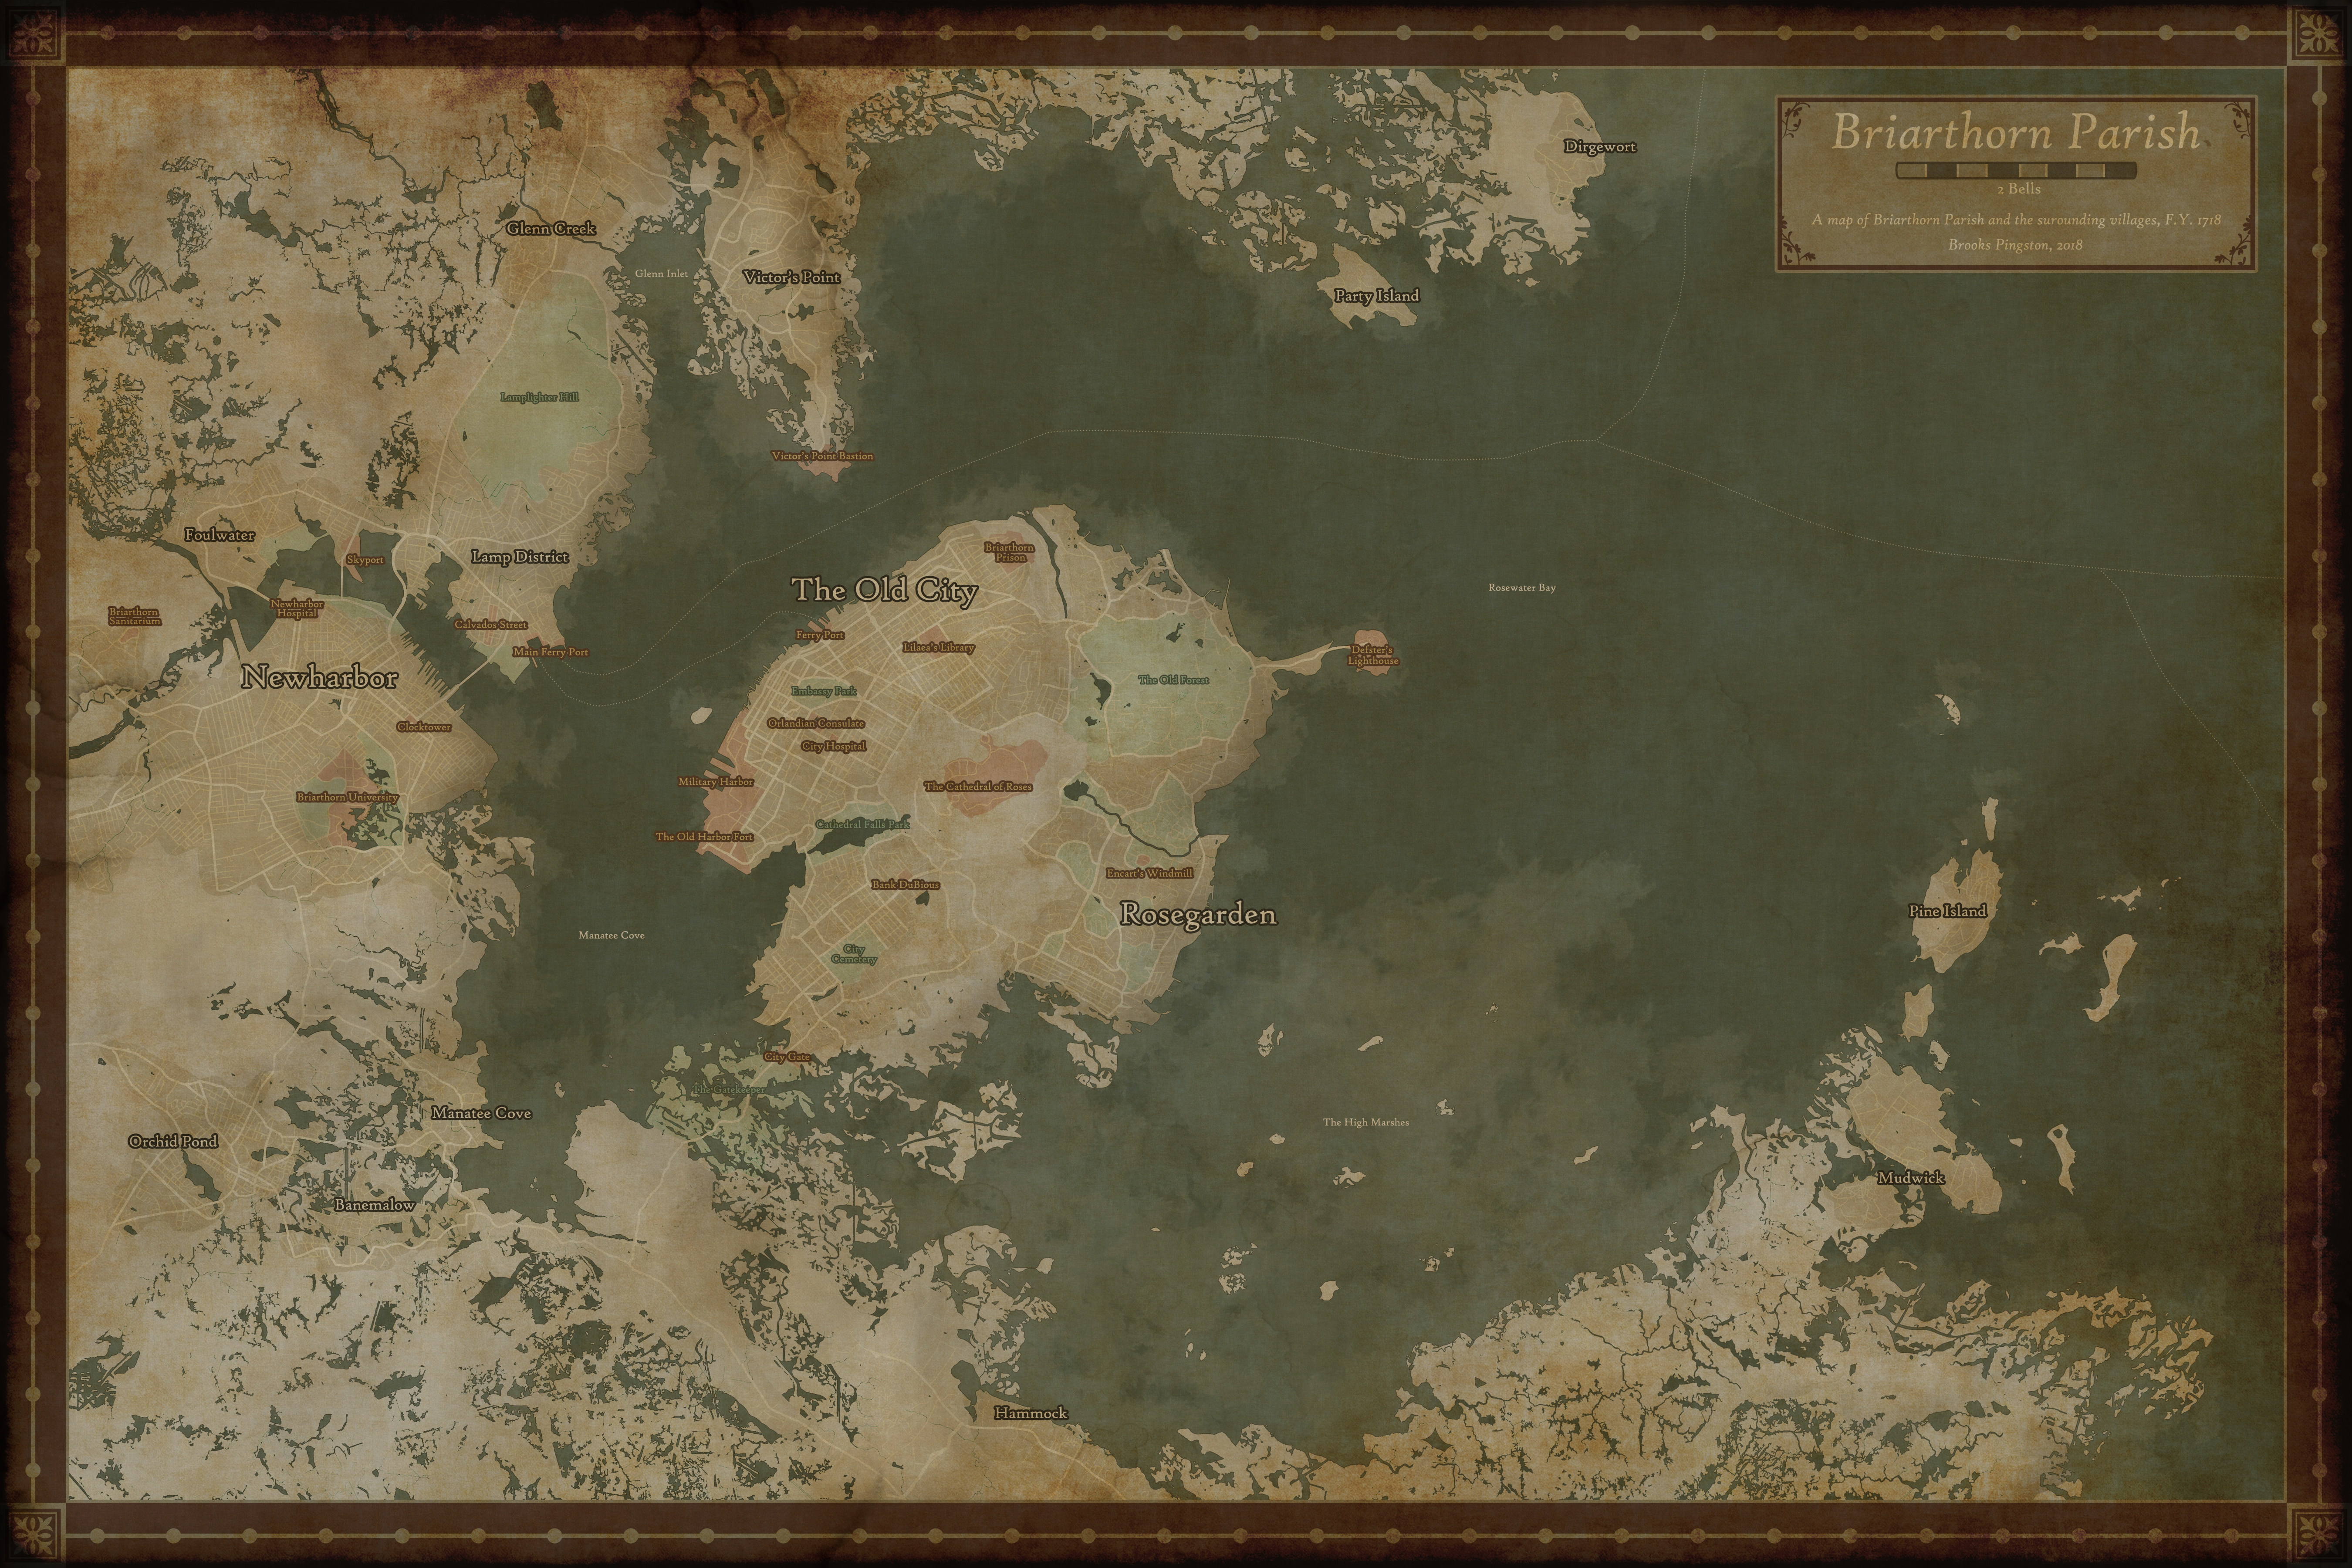 briarthorn-map-render-small-sample-antiqued-91818.jpg